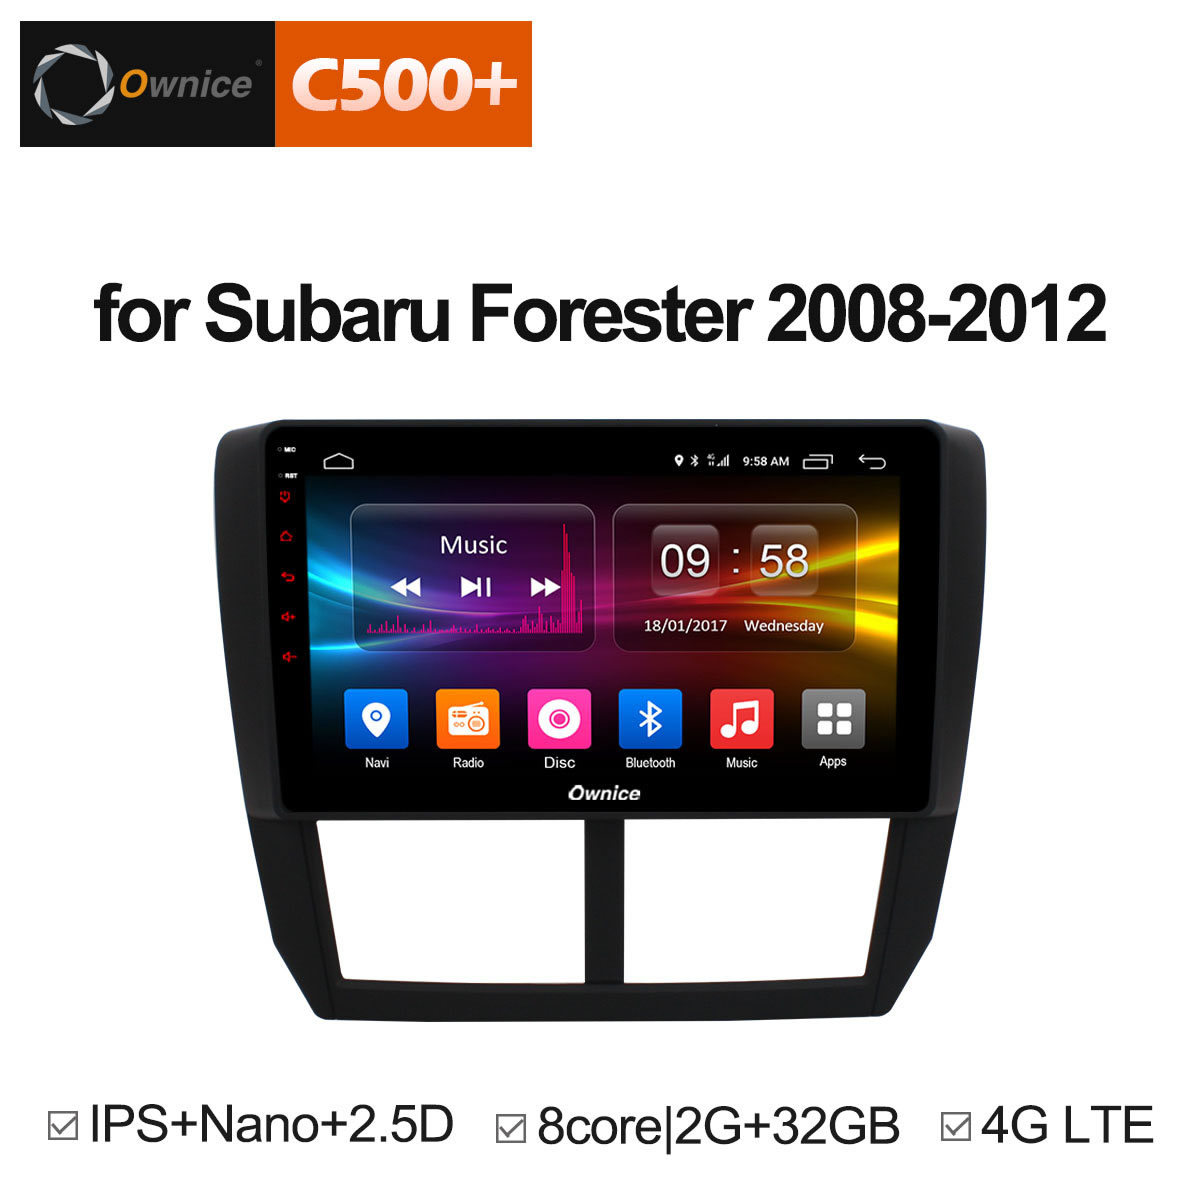 Ownice C500+ G10 Octa 8 Core Android 8.1 2G RAM Car DVD GPS Navi Player Radio For Subaru Forester XV WRX 2008 2009 - 2012 DAB+ ownice c500 4g sim lte octa 8 core android 6 0 for kia ceed 2013 2015 car dvd player gps navi radio wifi 4g bt 2gb ram 32g rom